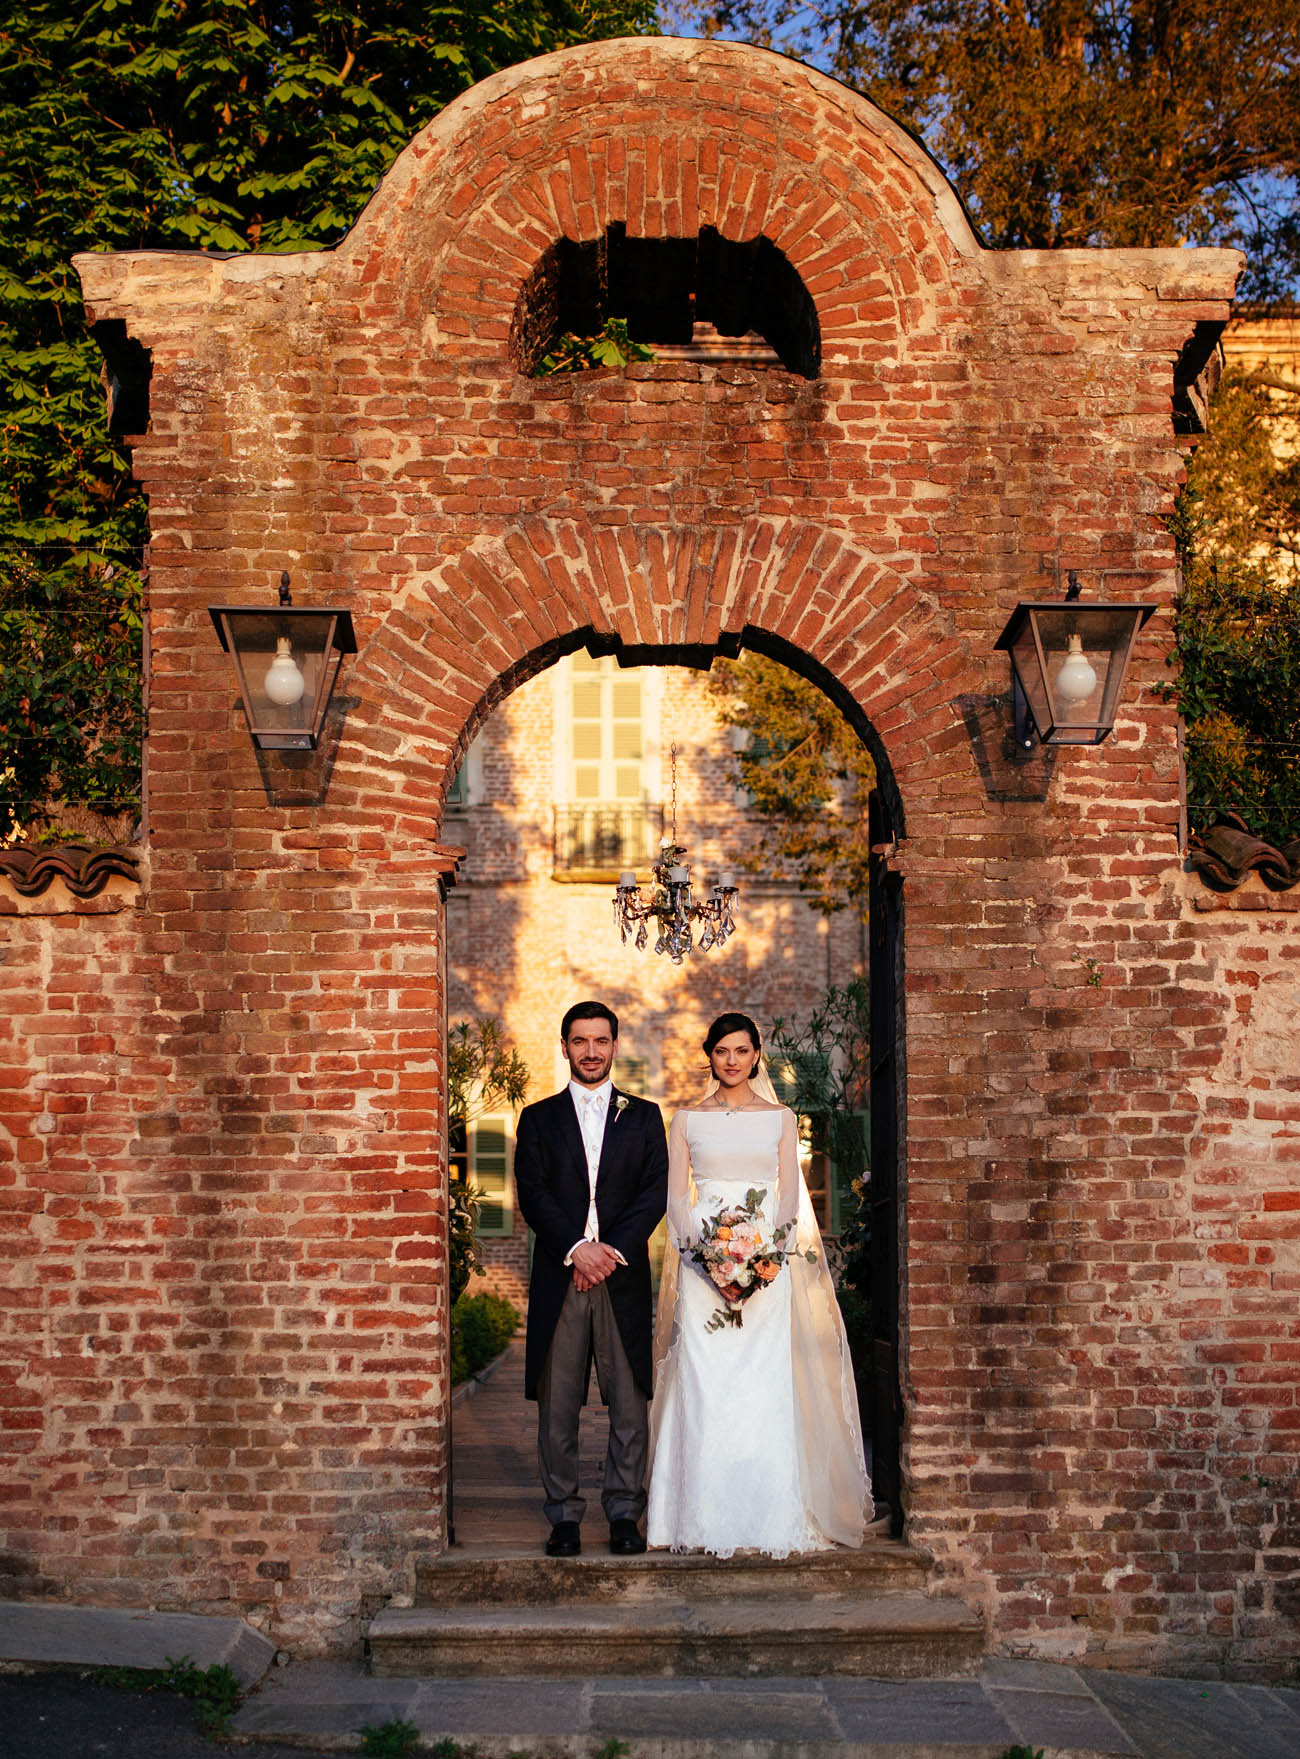 matrimonio romantico in villa